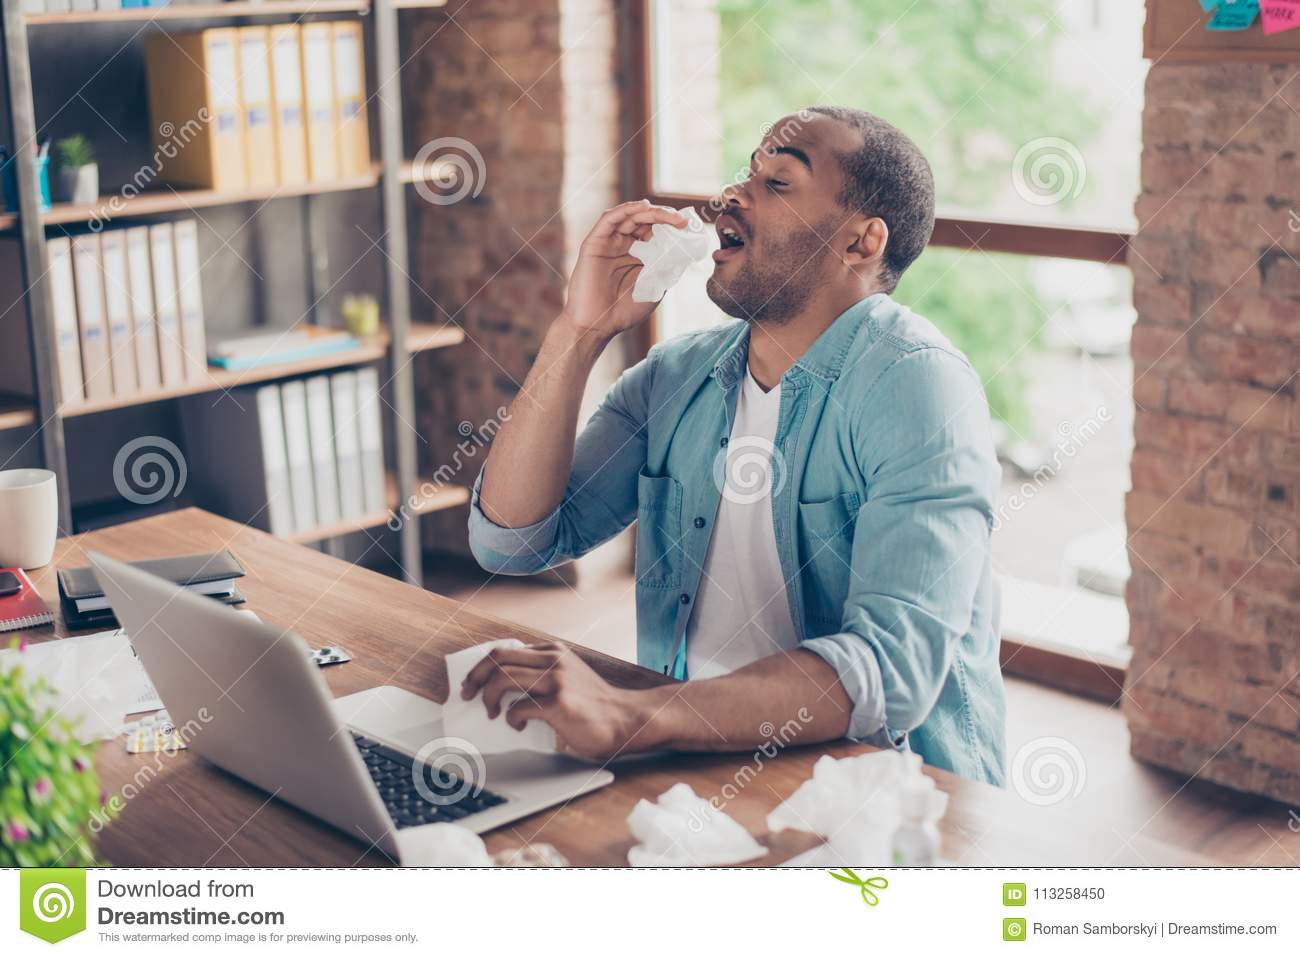 Young ill afro student is sneezing at work place in modern office, a lot of paper napkins on desktop and in his arm